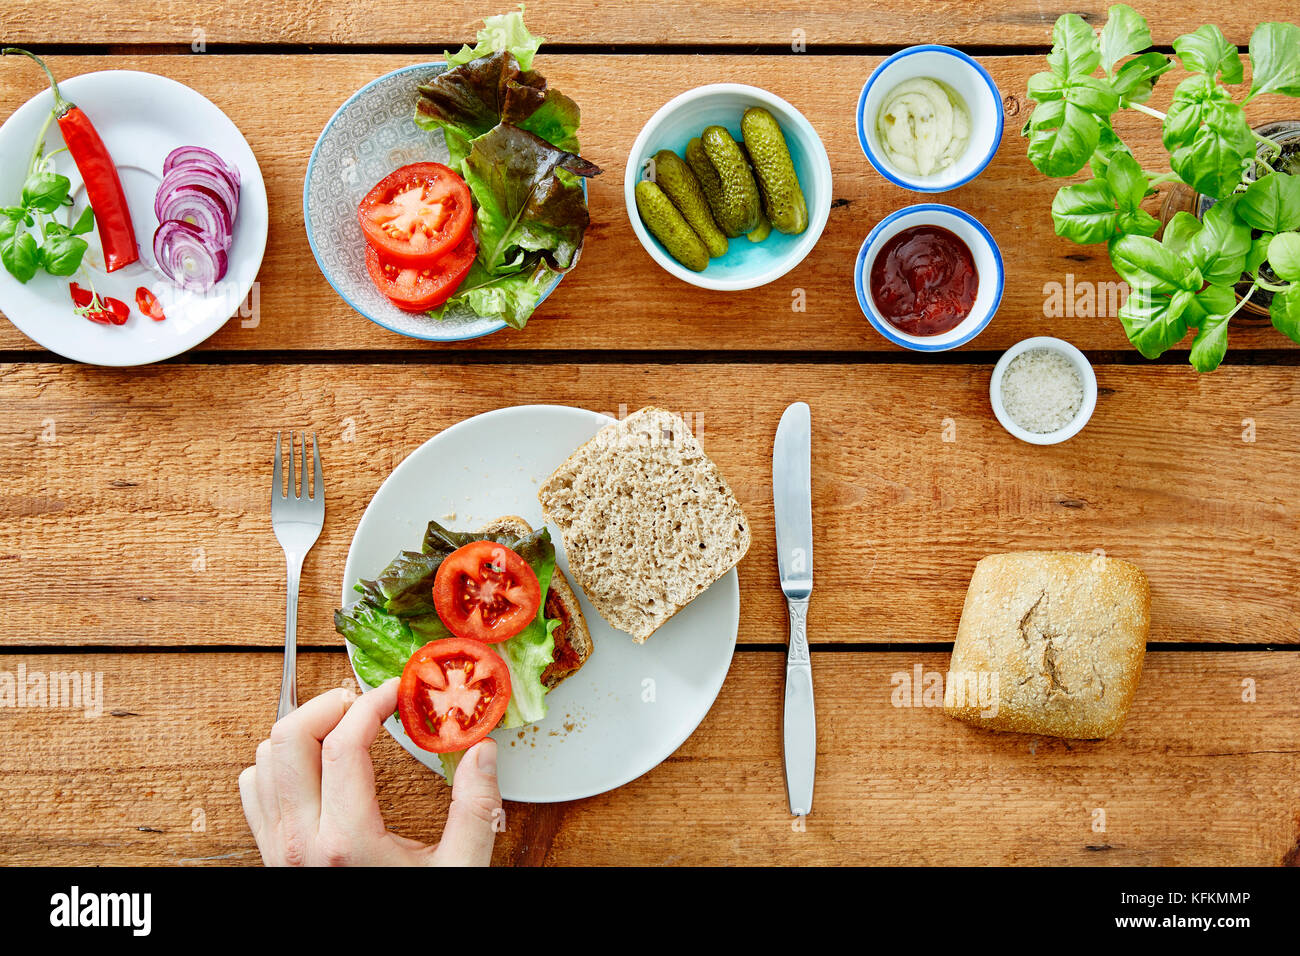 foodie preparing a fresh organic sandwich - Stock Image